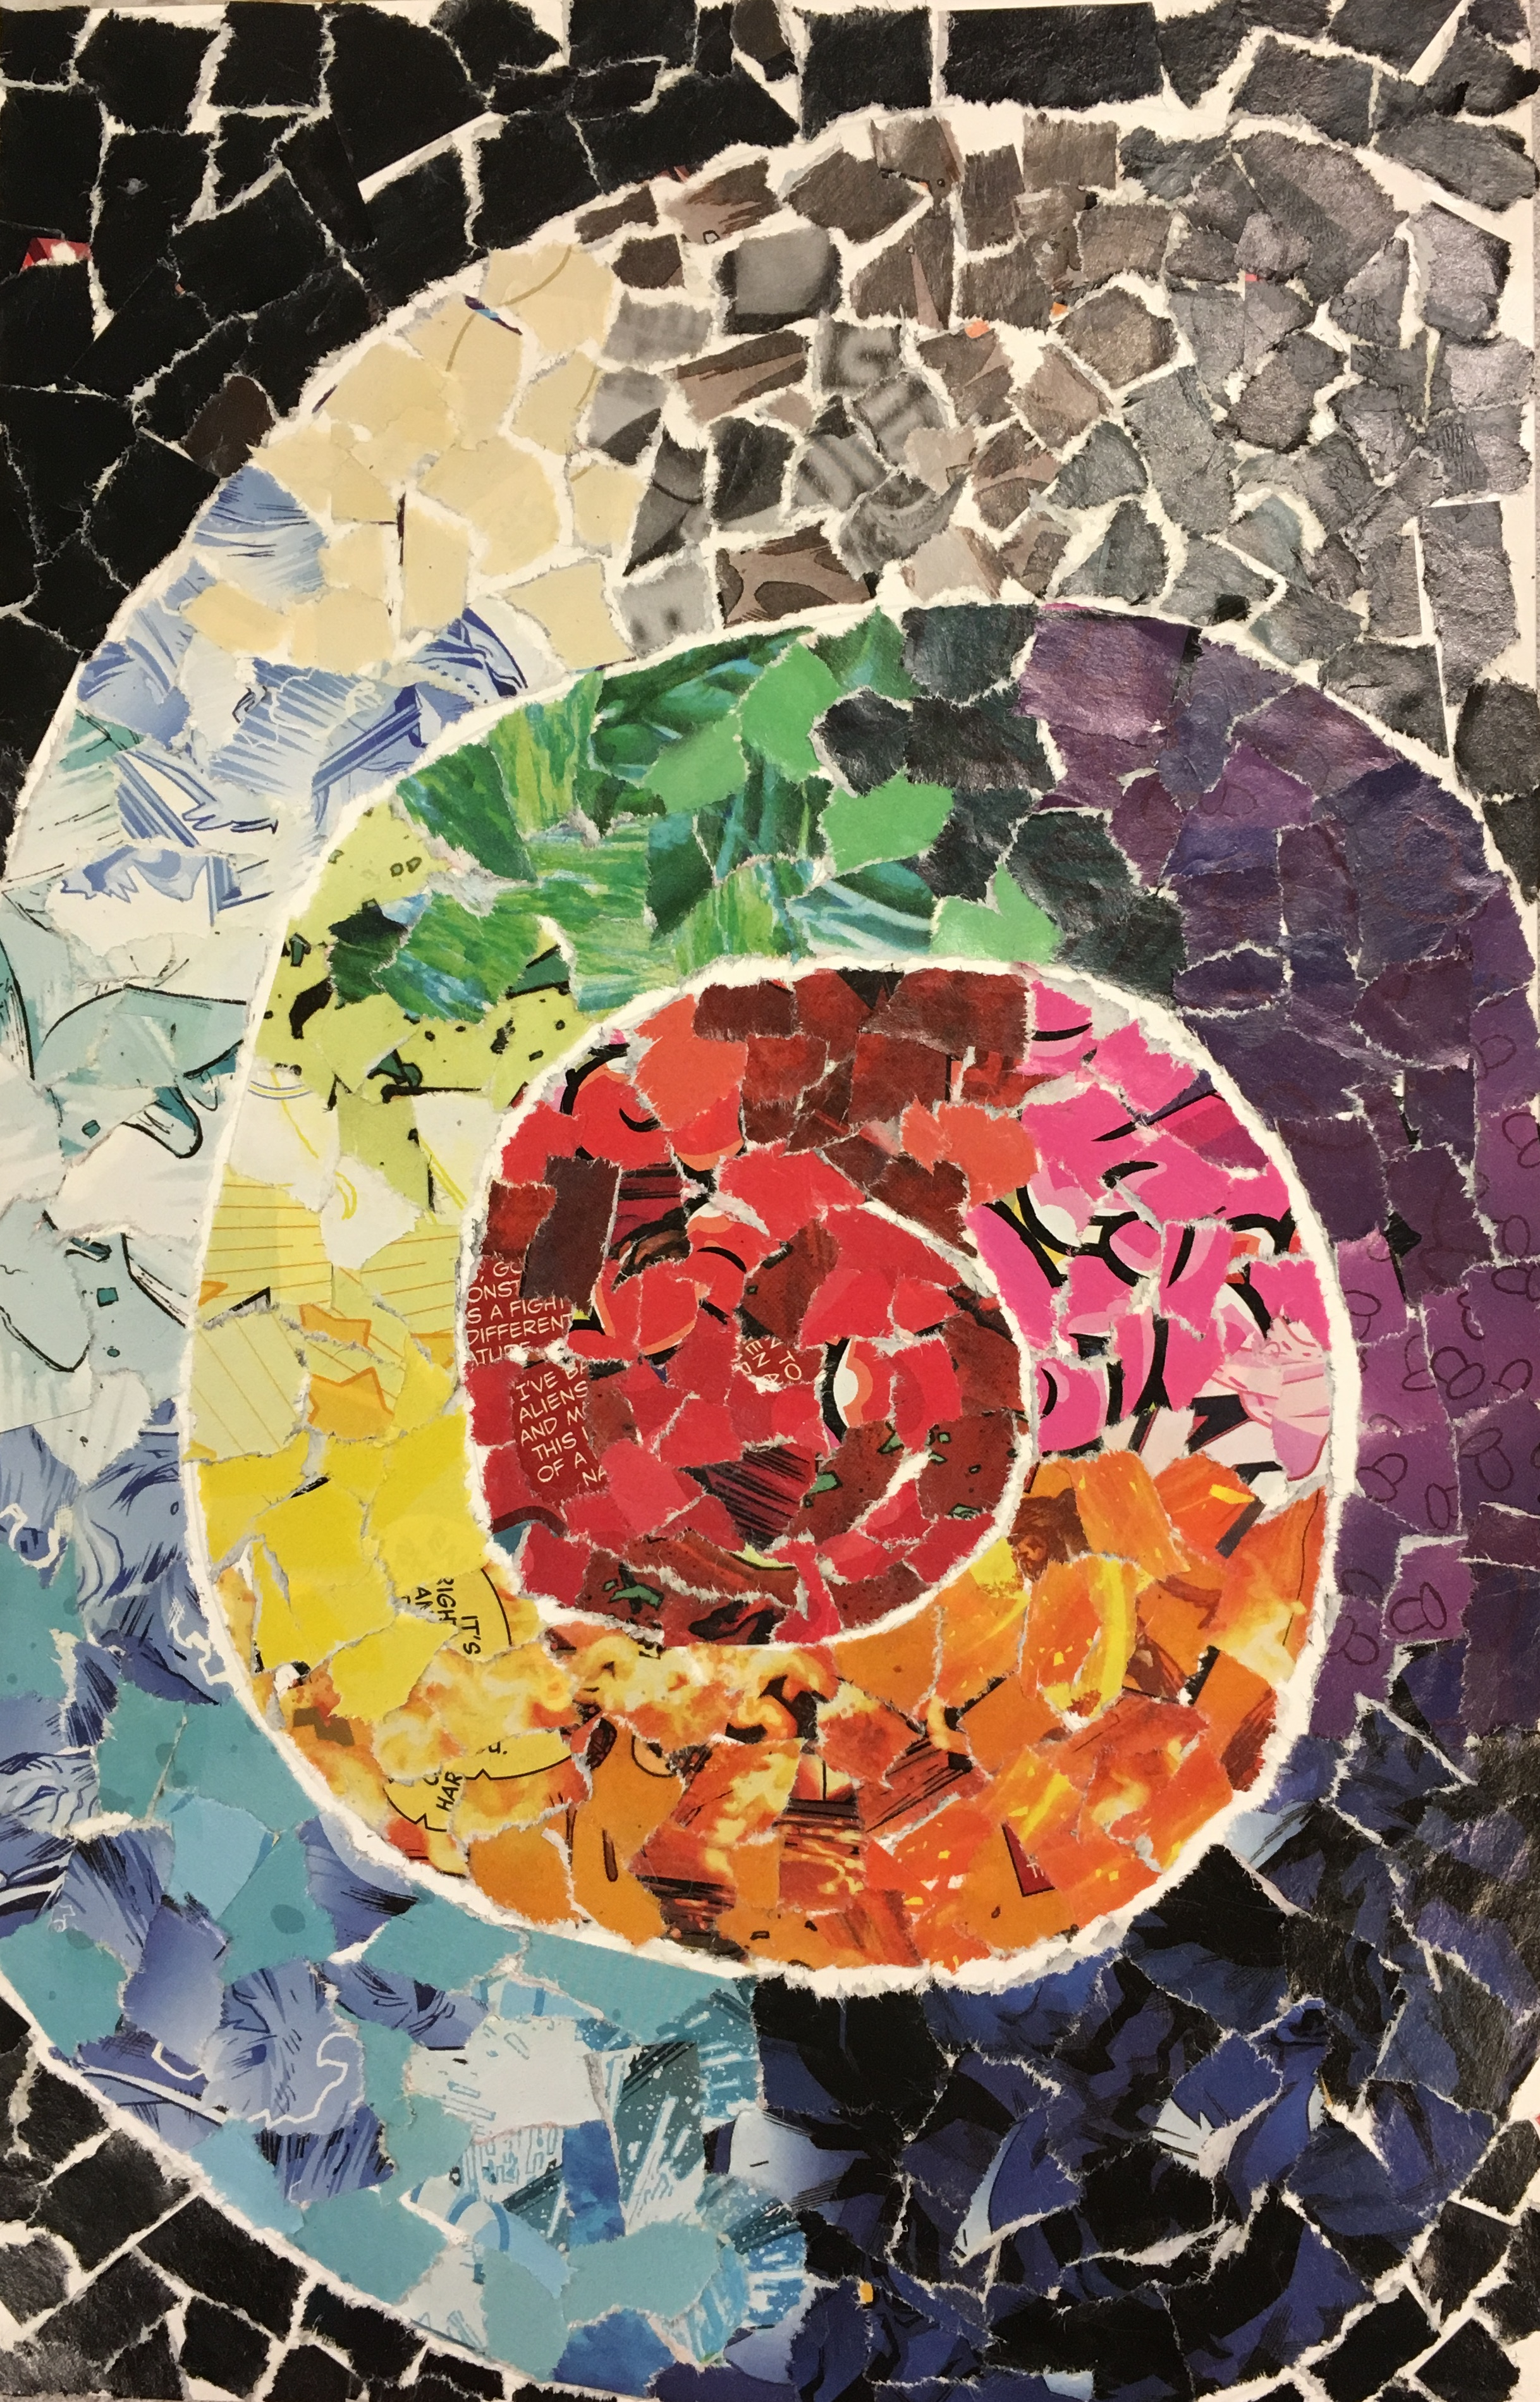 a colorful mosaic art spiral made of small pieces of magazine pages